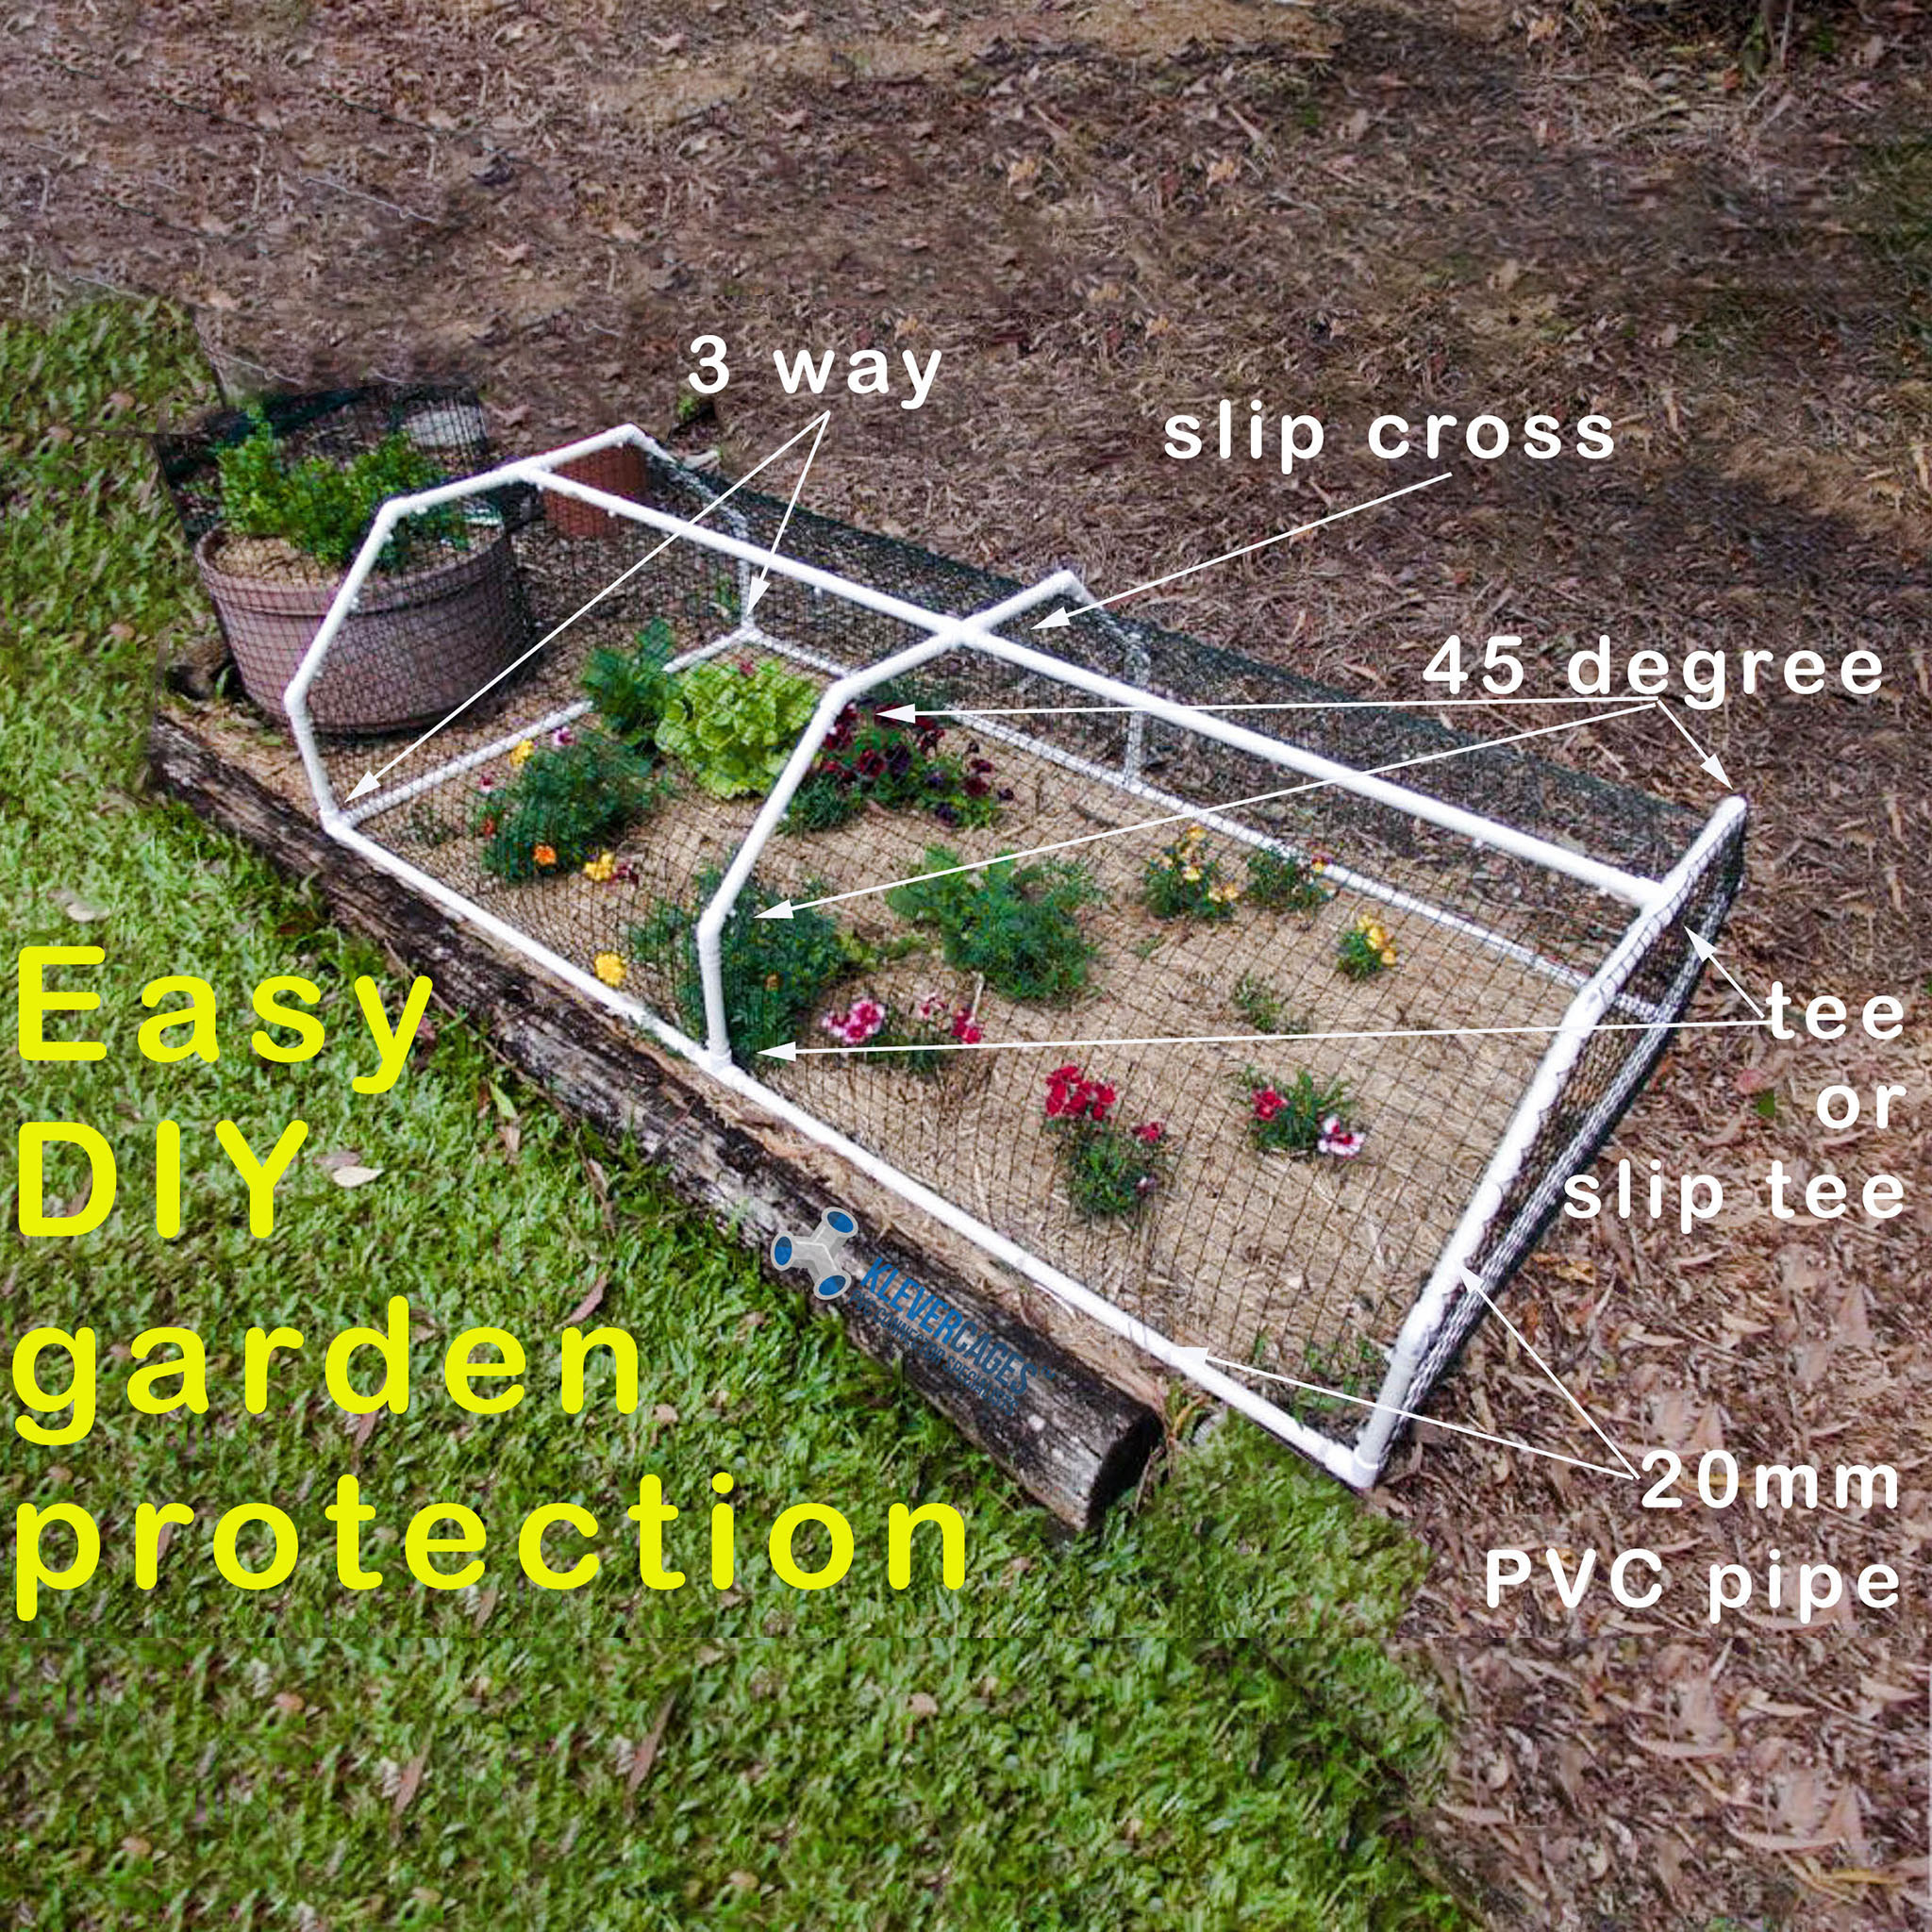 garden-protection-frame-built-with-PVC-pipe-and-klever-connectors-from-Klever-Cages-including-3-way-elbow-20mm